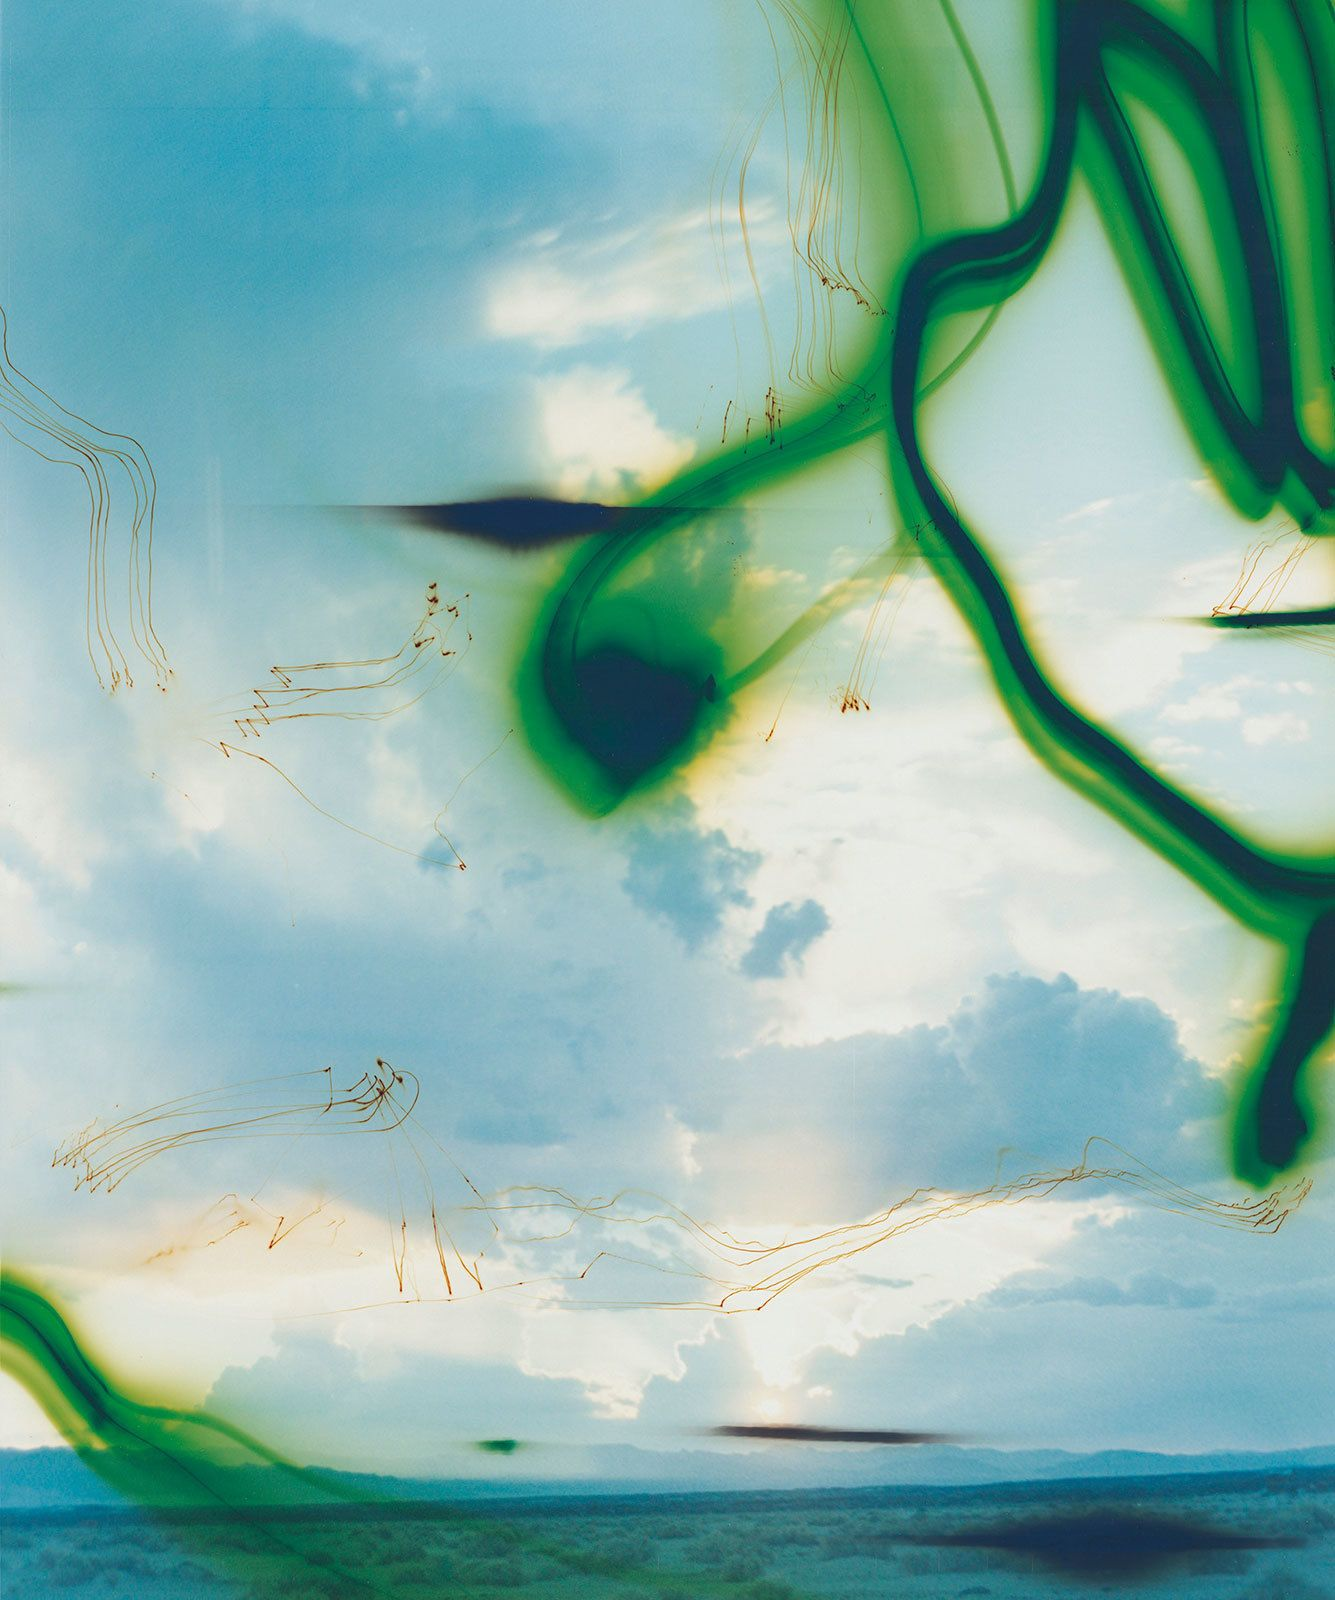 Maureen Paley Wolfgang Tillmans Artwork I Dont Want To Get Over You